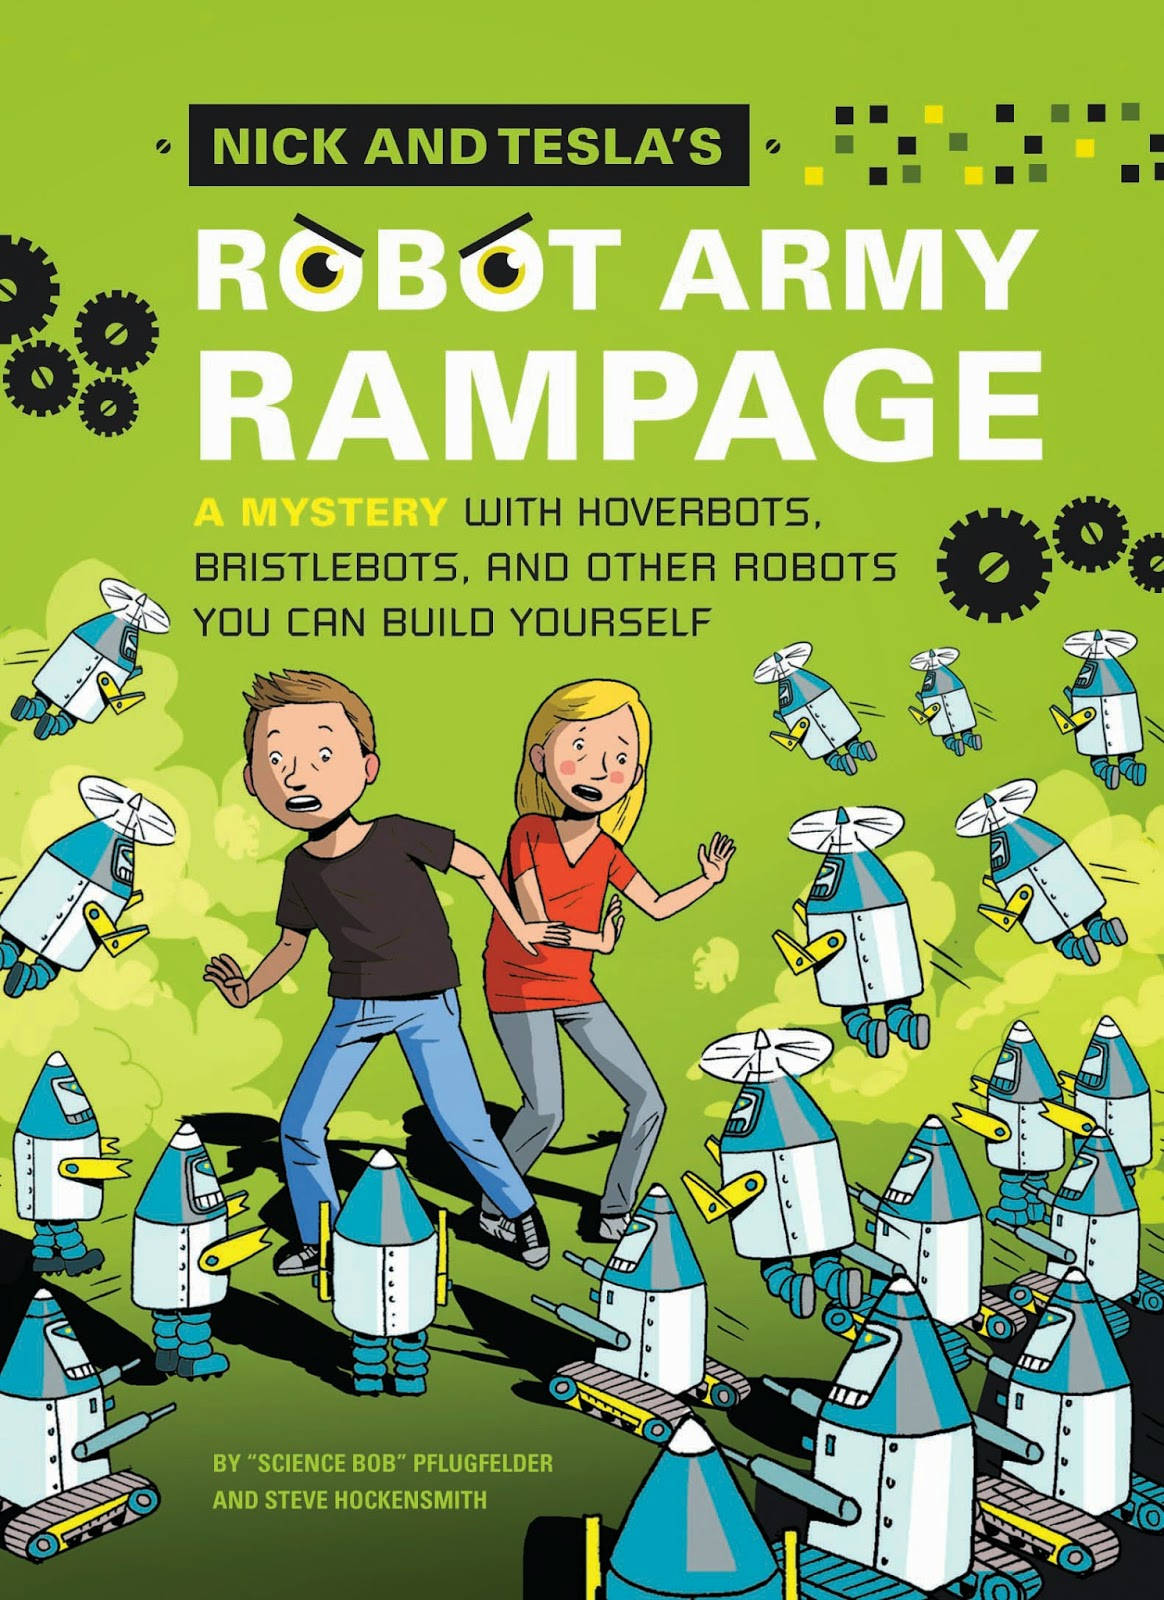 Book cover: Nick and Tesla's Robot Army Rampage by 'Science Bob' Pflugfelder and Steve Hockensmith. Cartoon rendition of a boy and girl standing, arms up and alarmed expressions on their faces, as an army of knee-high flying and marching robots advances on them from left, right and front.